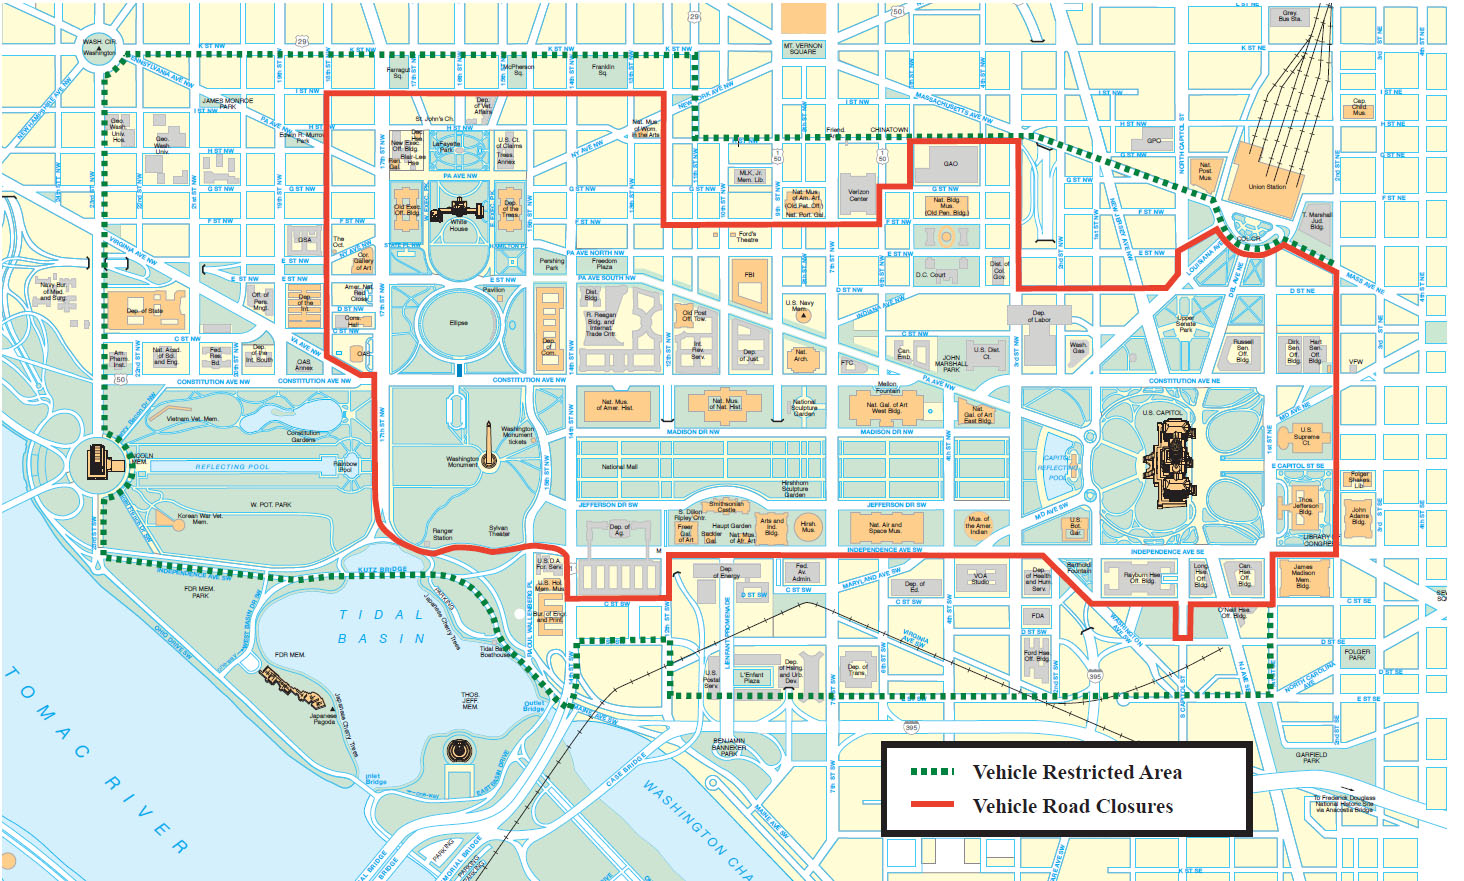 Inauguration Brings Road Closures Parking Restrictions WTOP - Washington dc traffic map